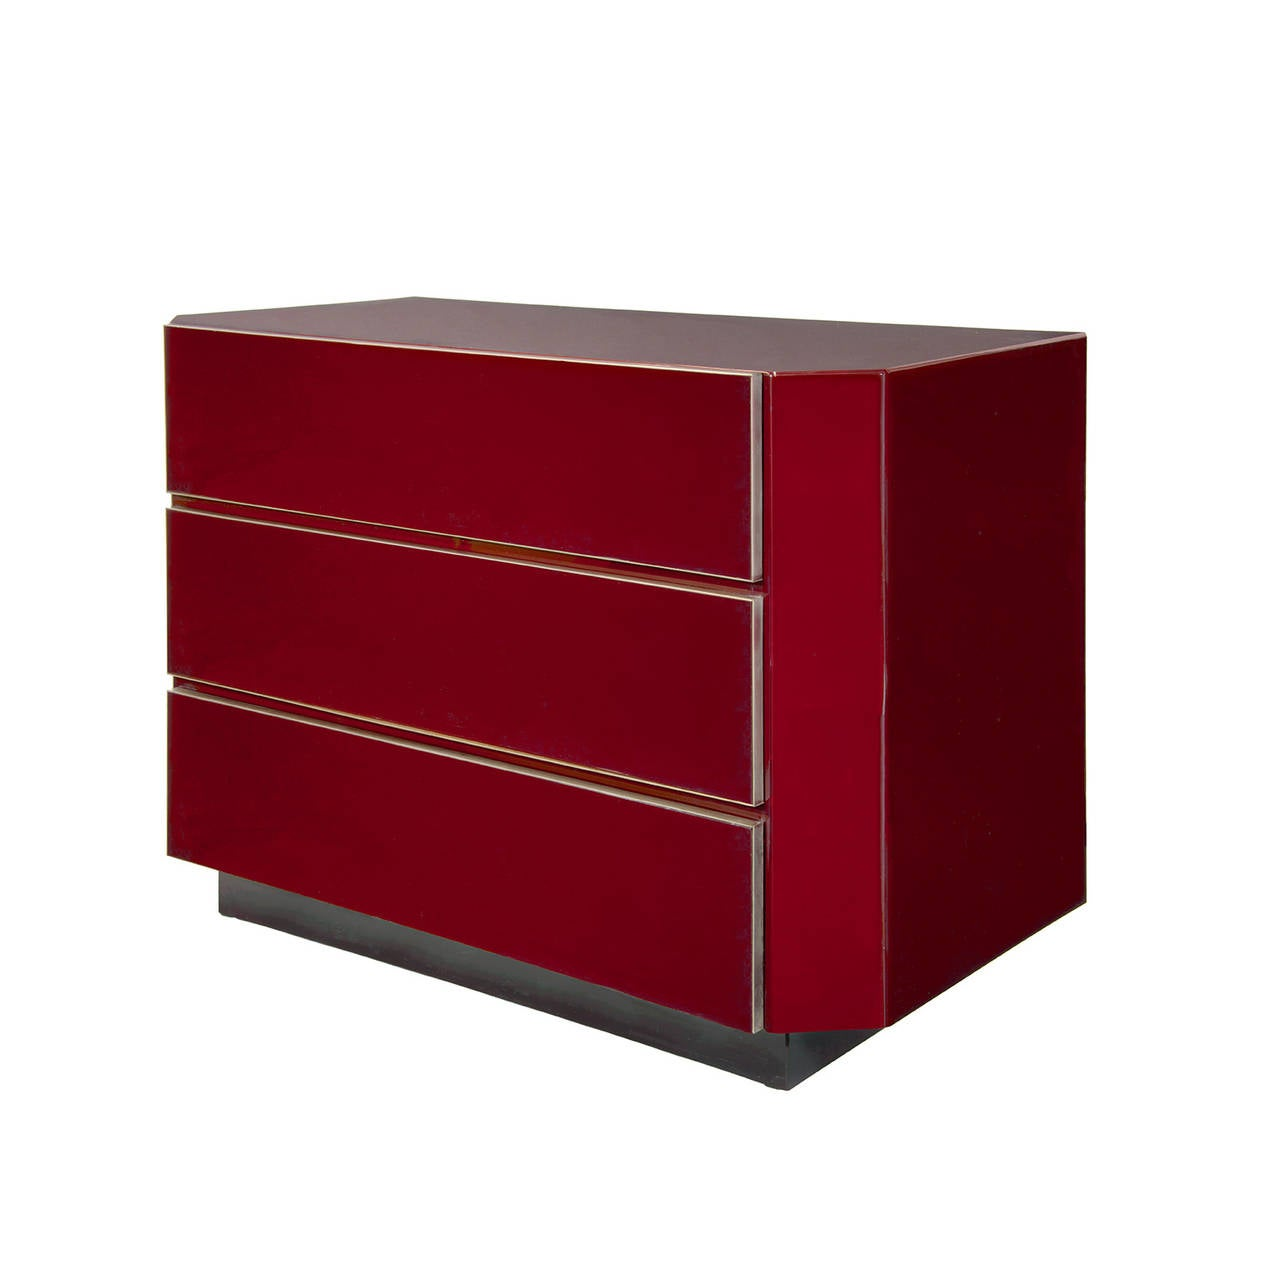 French 1970s Burgundy Red Lacquer Chest Attributed to Maison Jansen For Sale